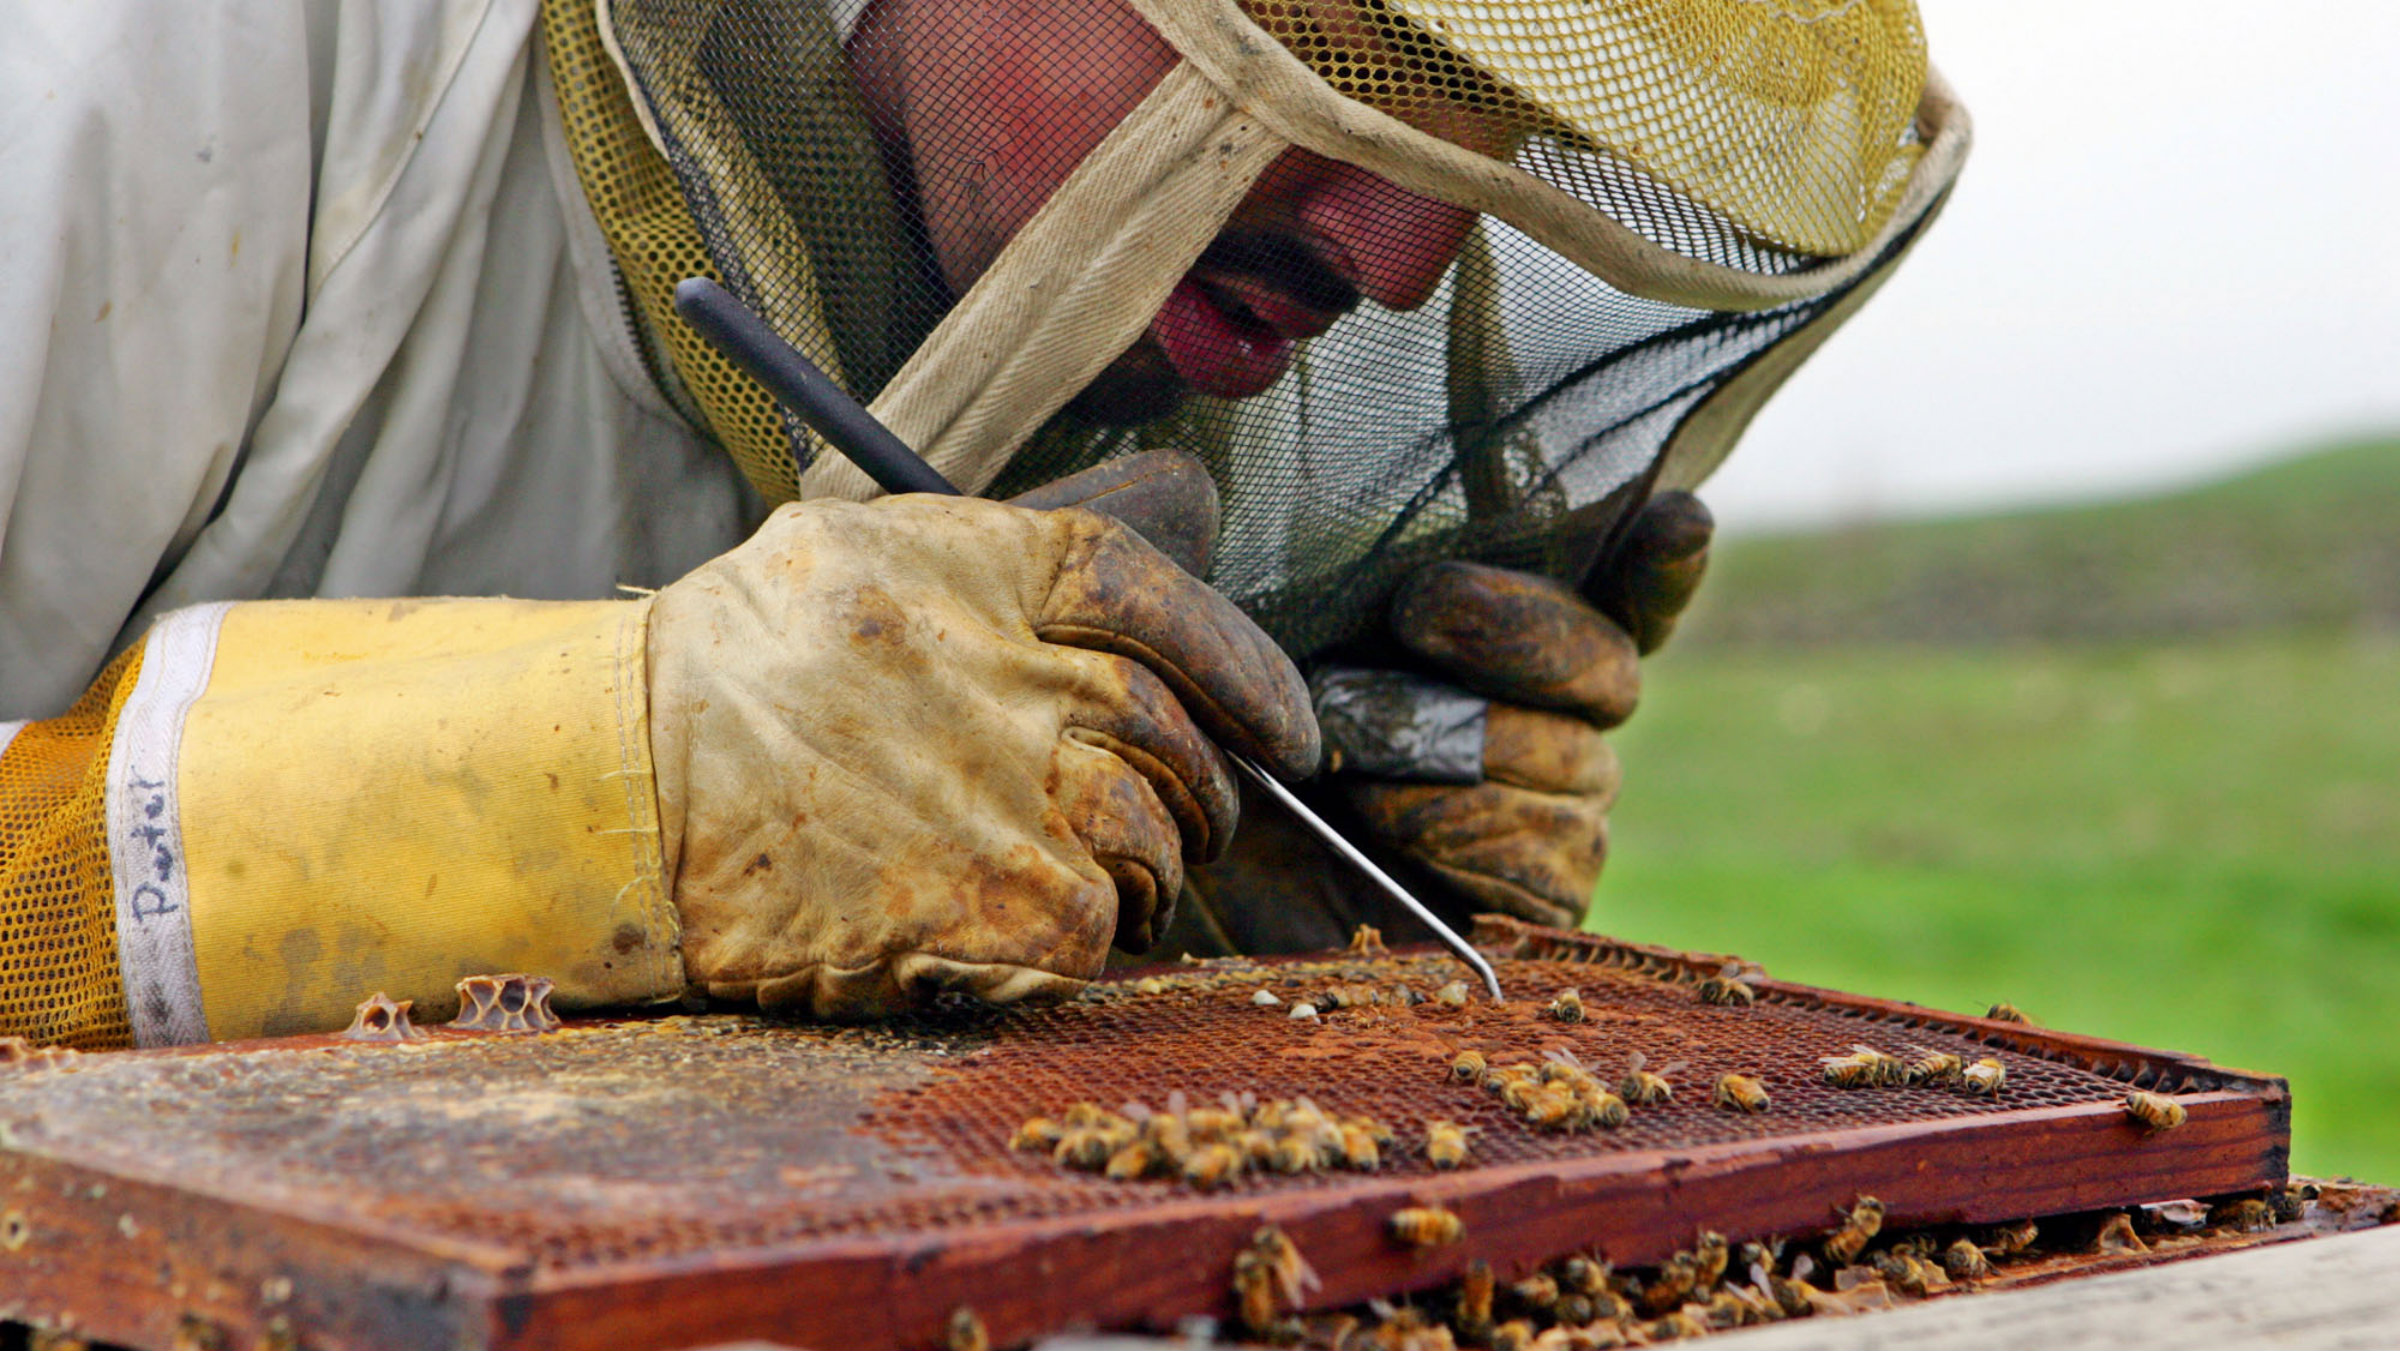 Scientists discover what's killing the bees and it's worse